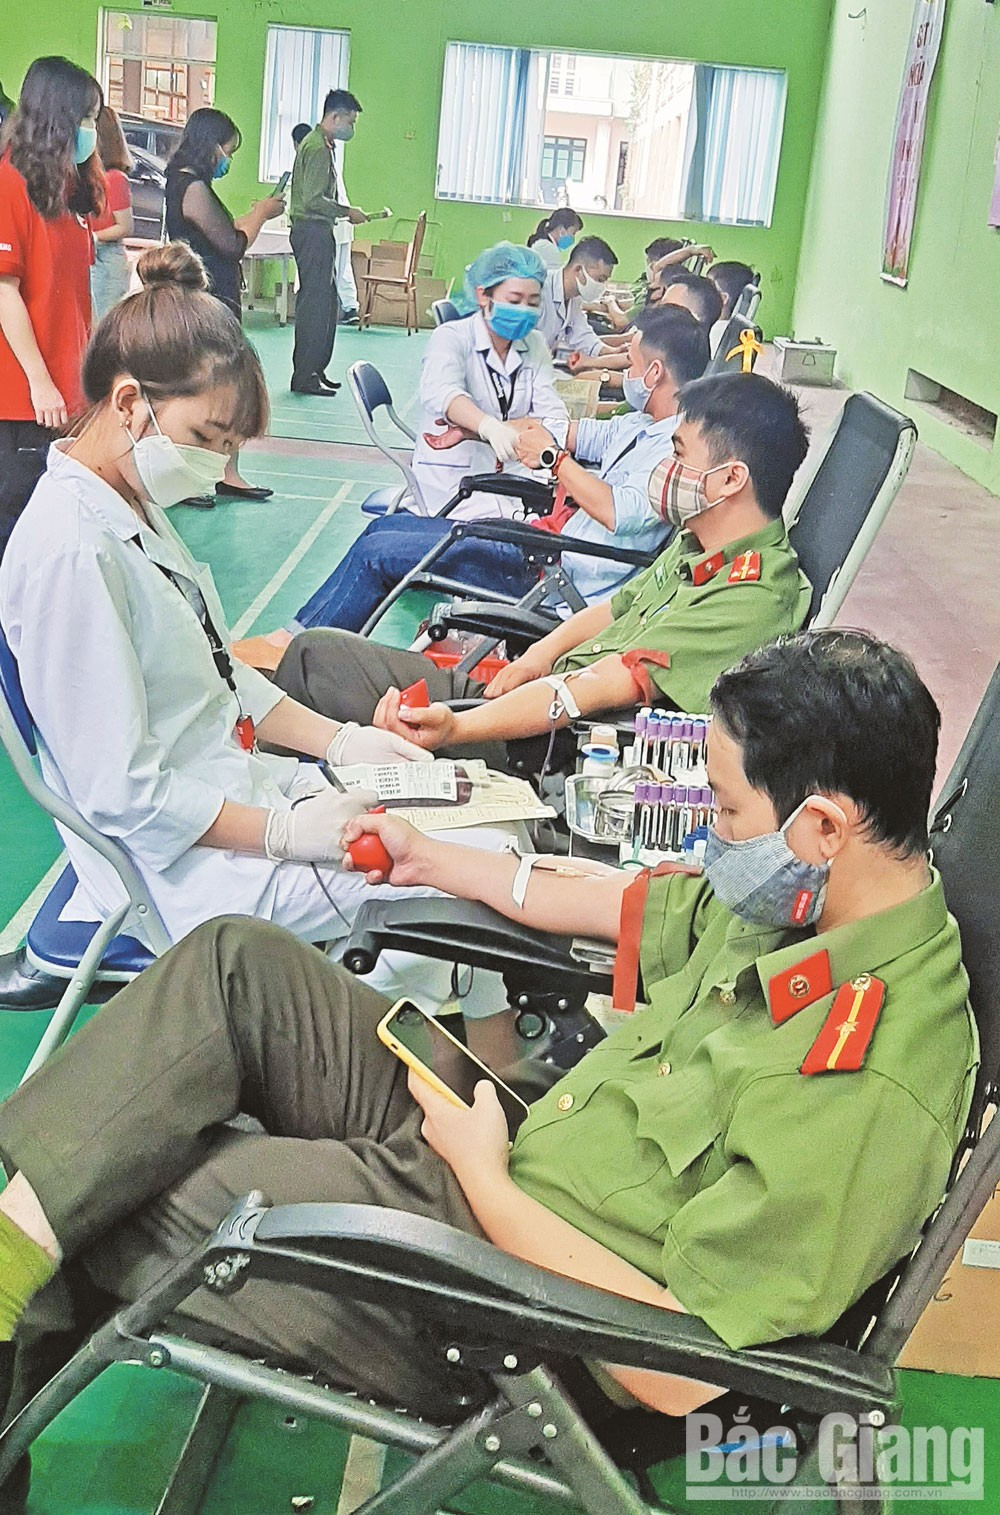 Bac Giang province, Red hearts, save lives, Youth Union, Voluntary Blood Donation Day, noble gesture, officers and policemen, Covid-19 outbreak,